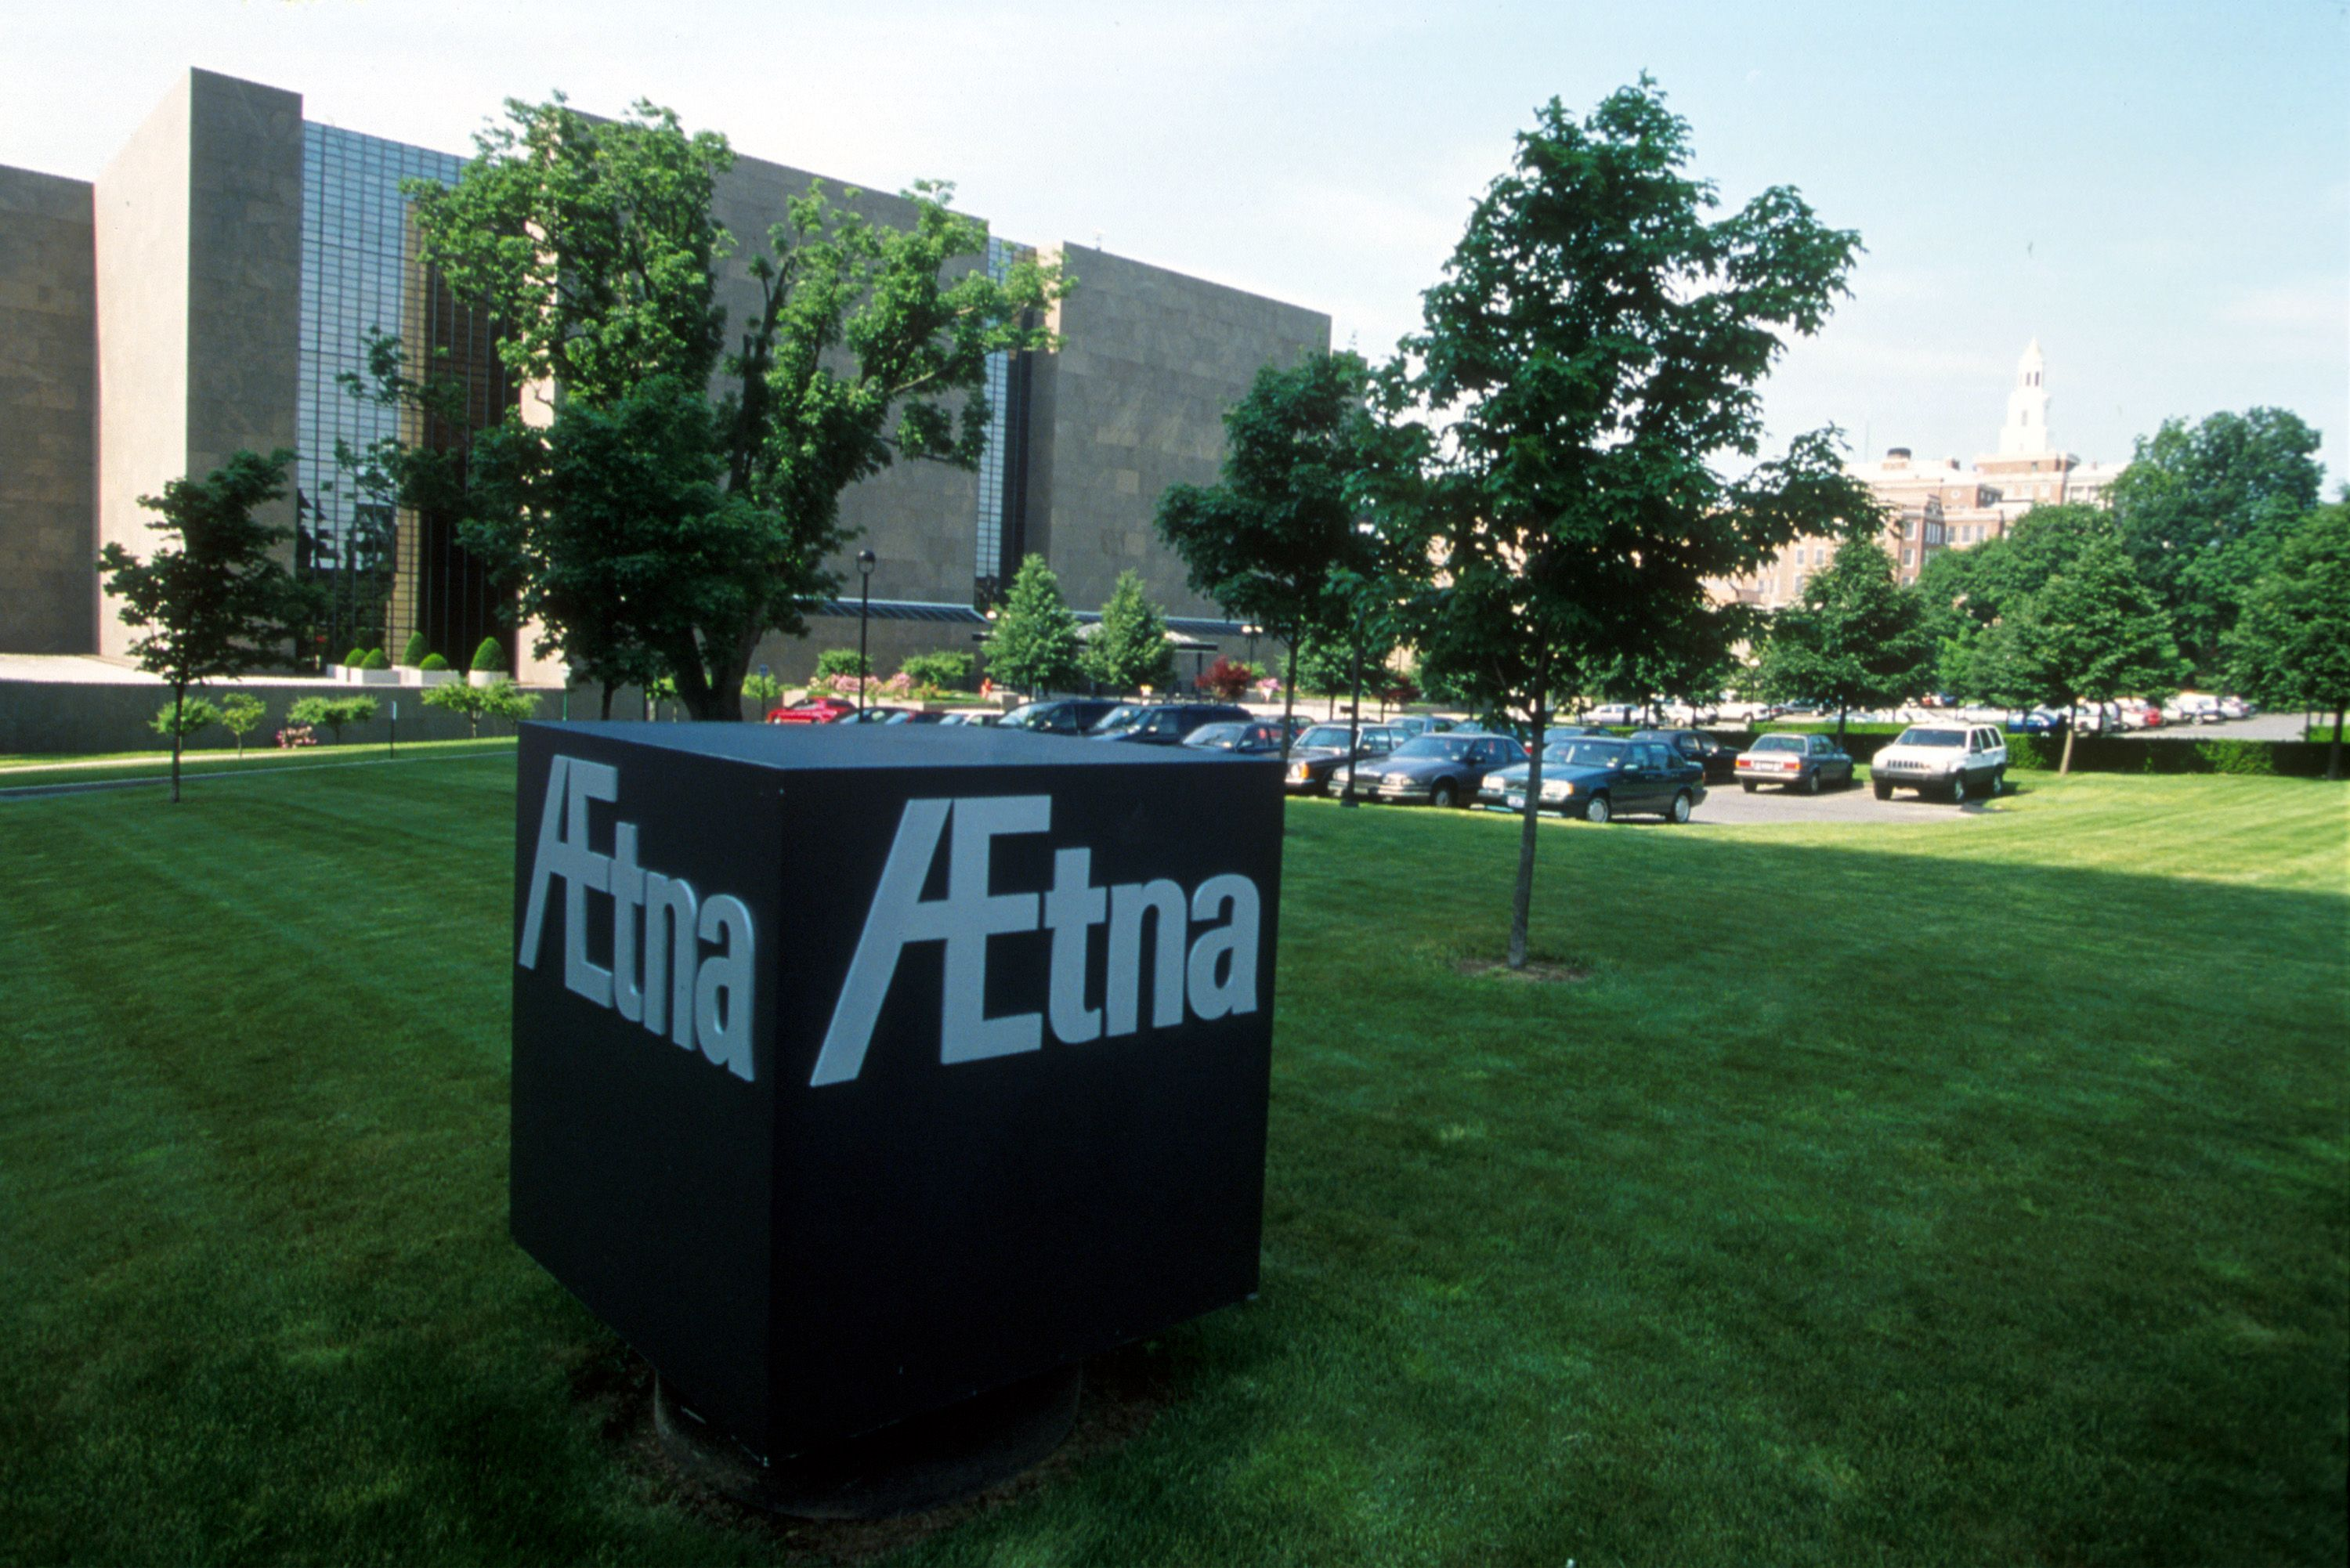 Health insurance company Aetna agrees to pay settlement